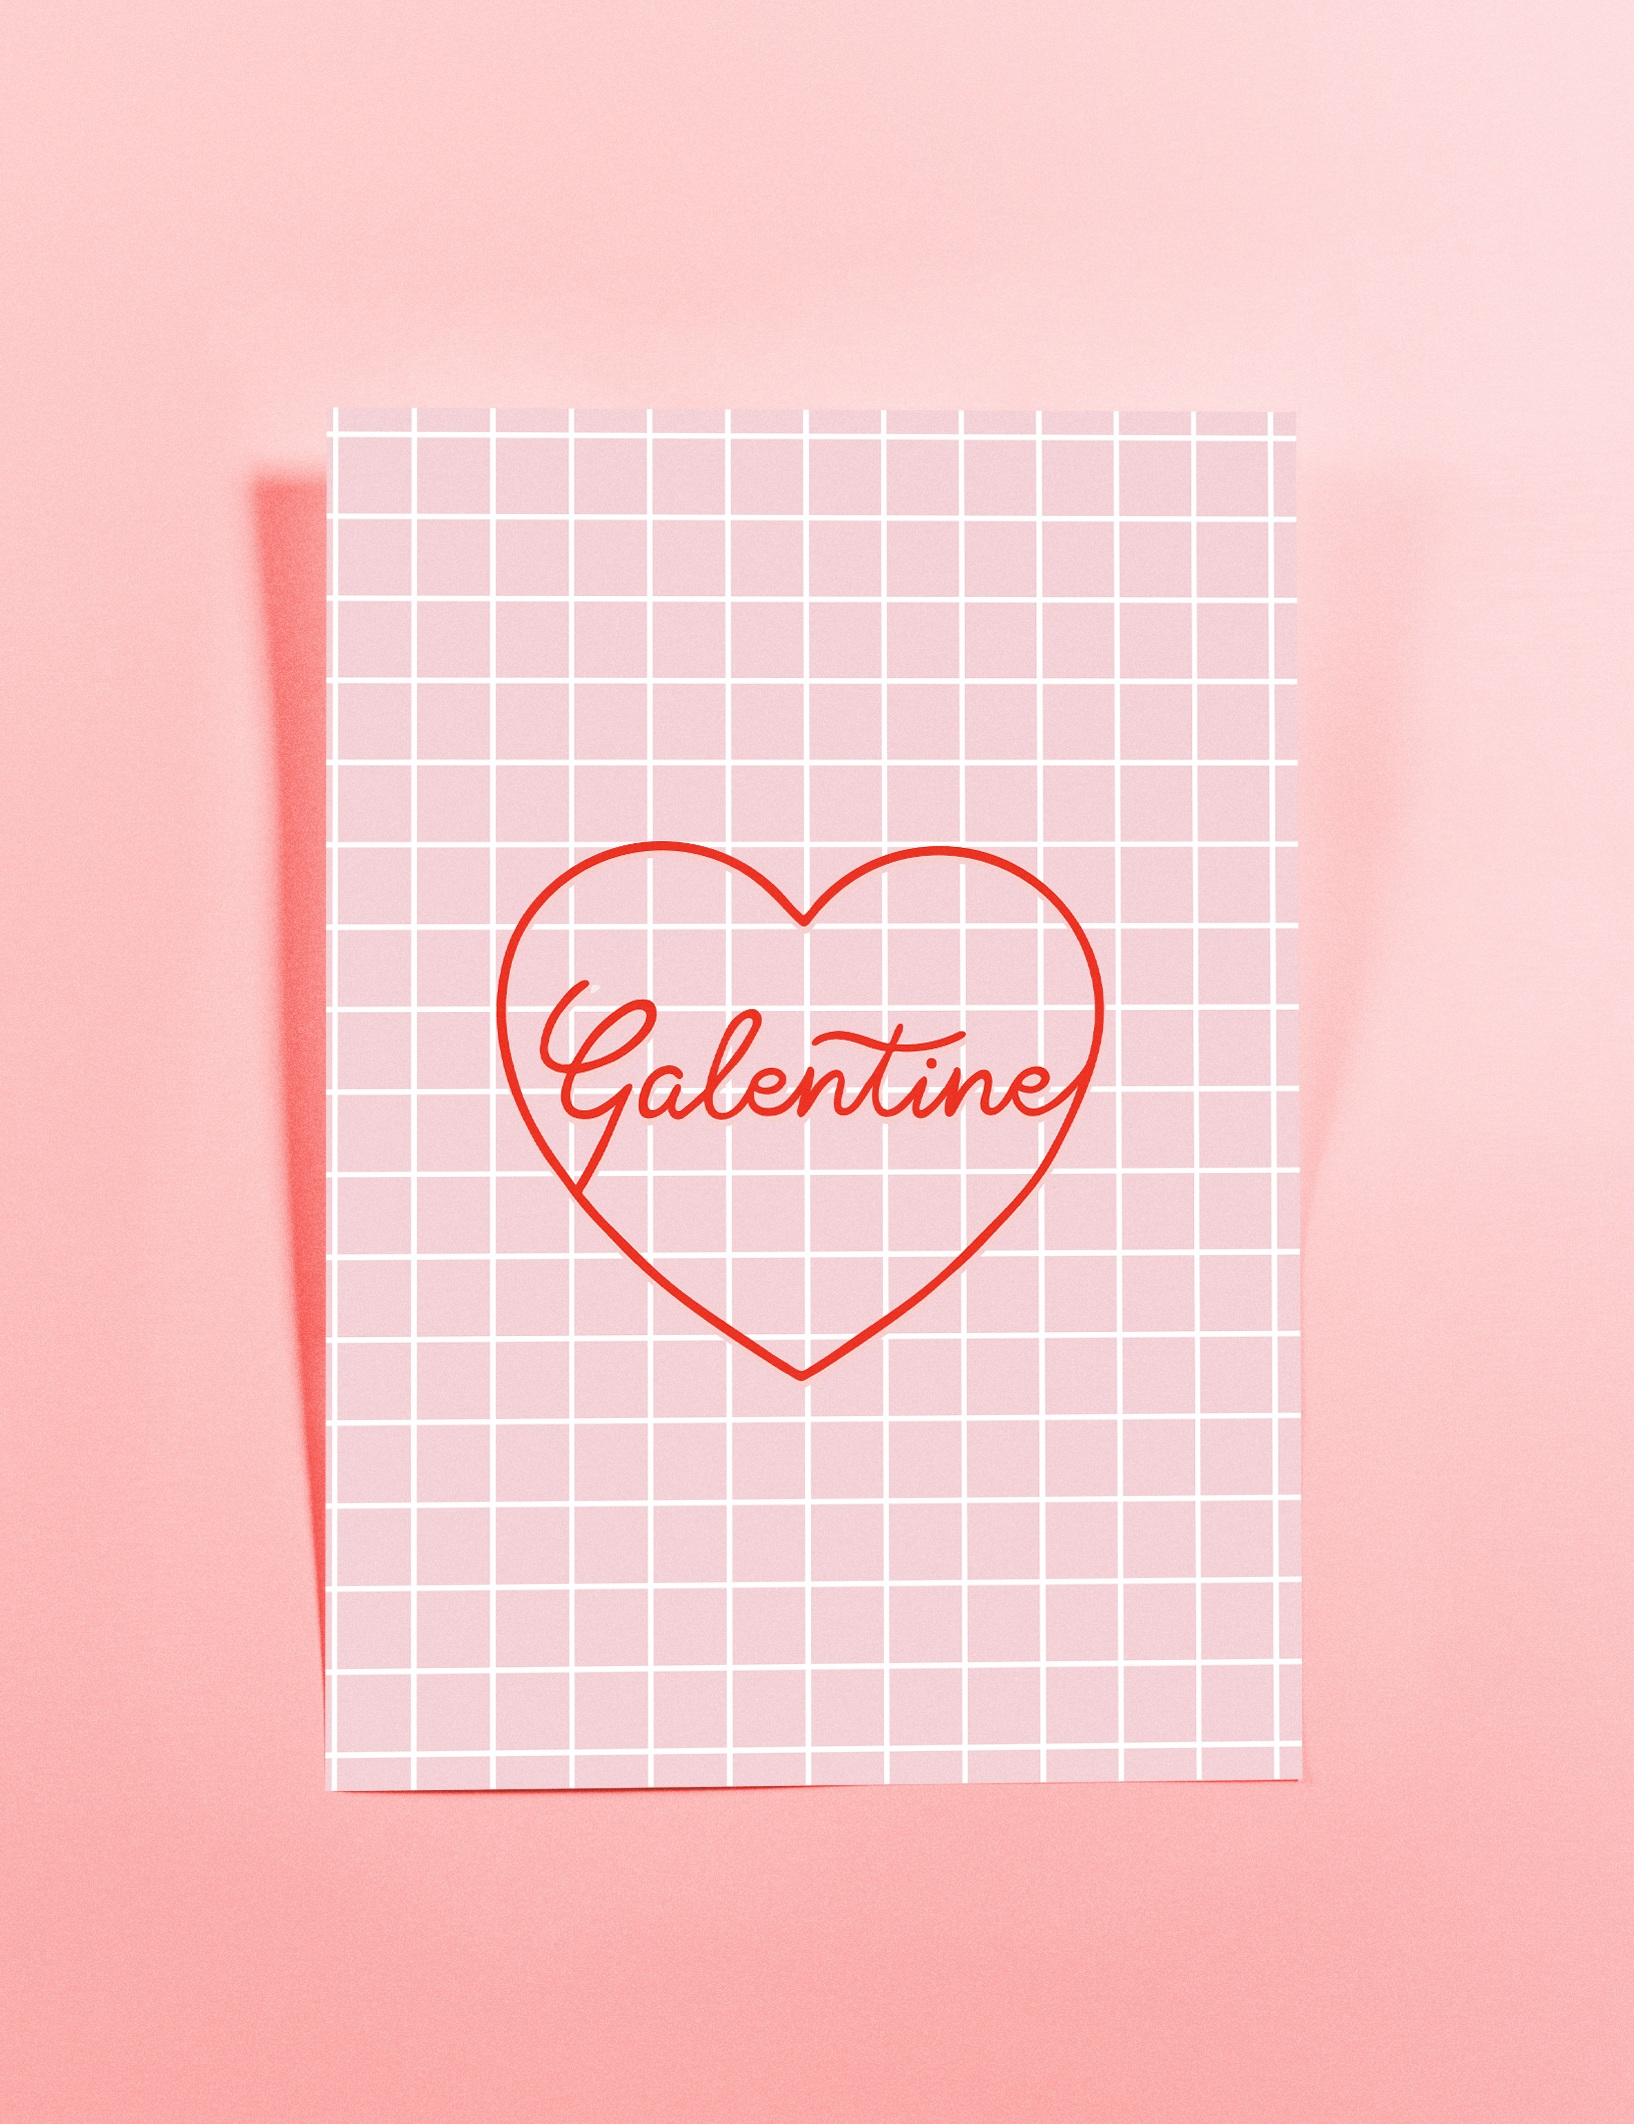 galentine_mock-up-2.jpg